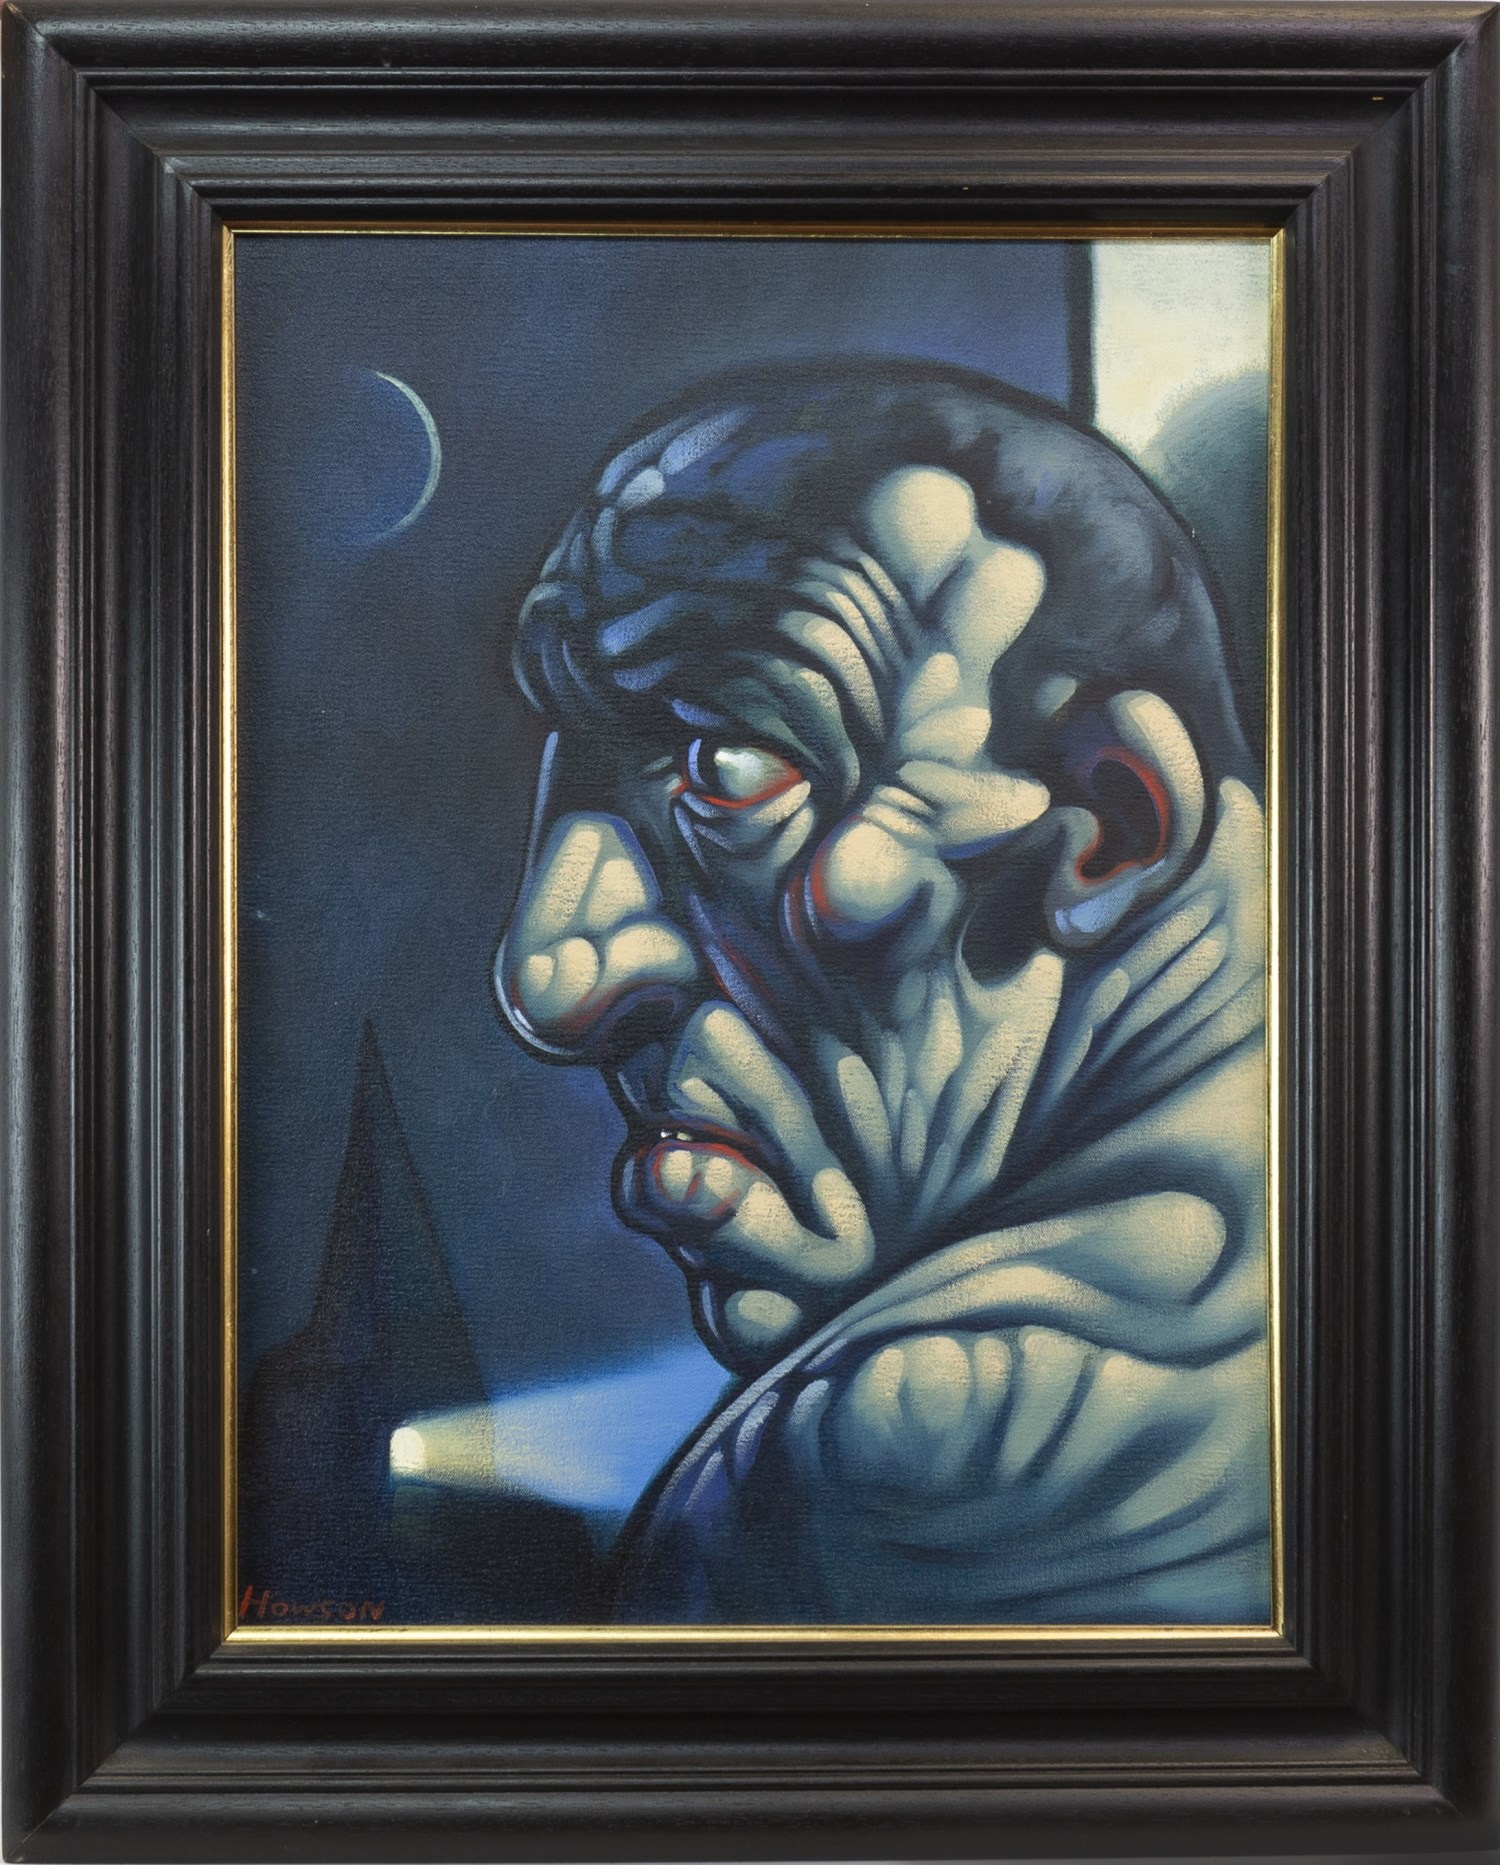 Lot 99 - HOPE, AN OIL ON CANVAS BY PETER HOWSON